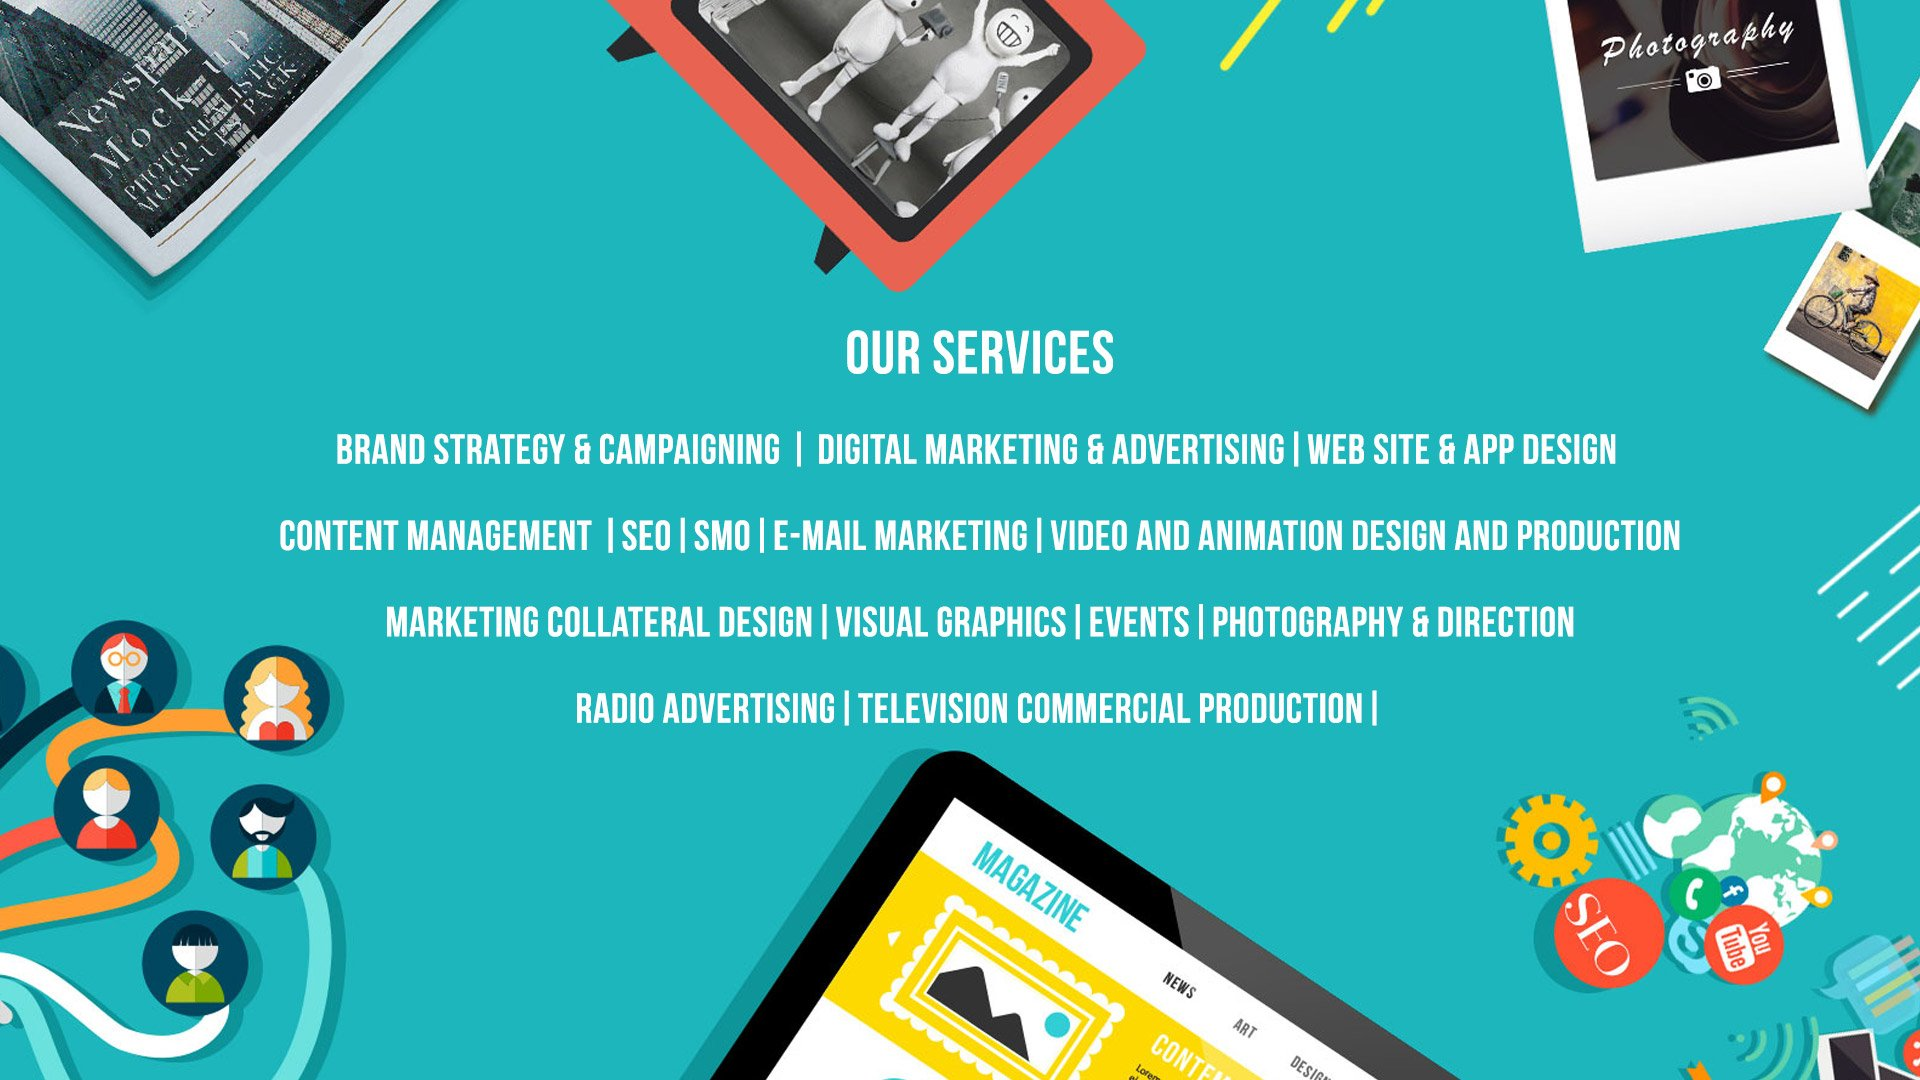 Walson Advertising & Marketing Solutions